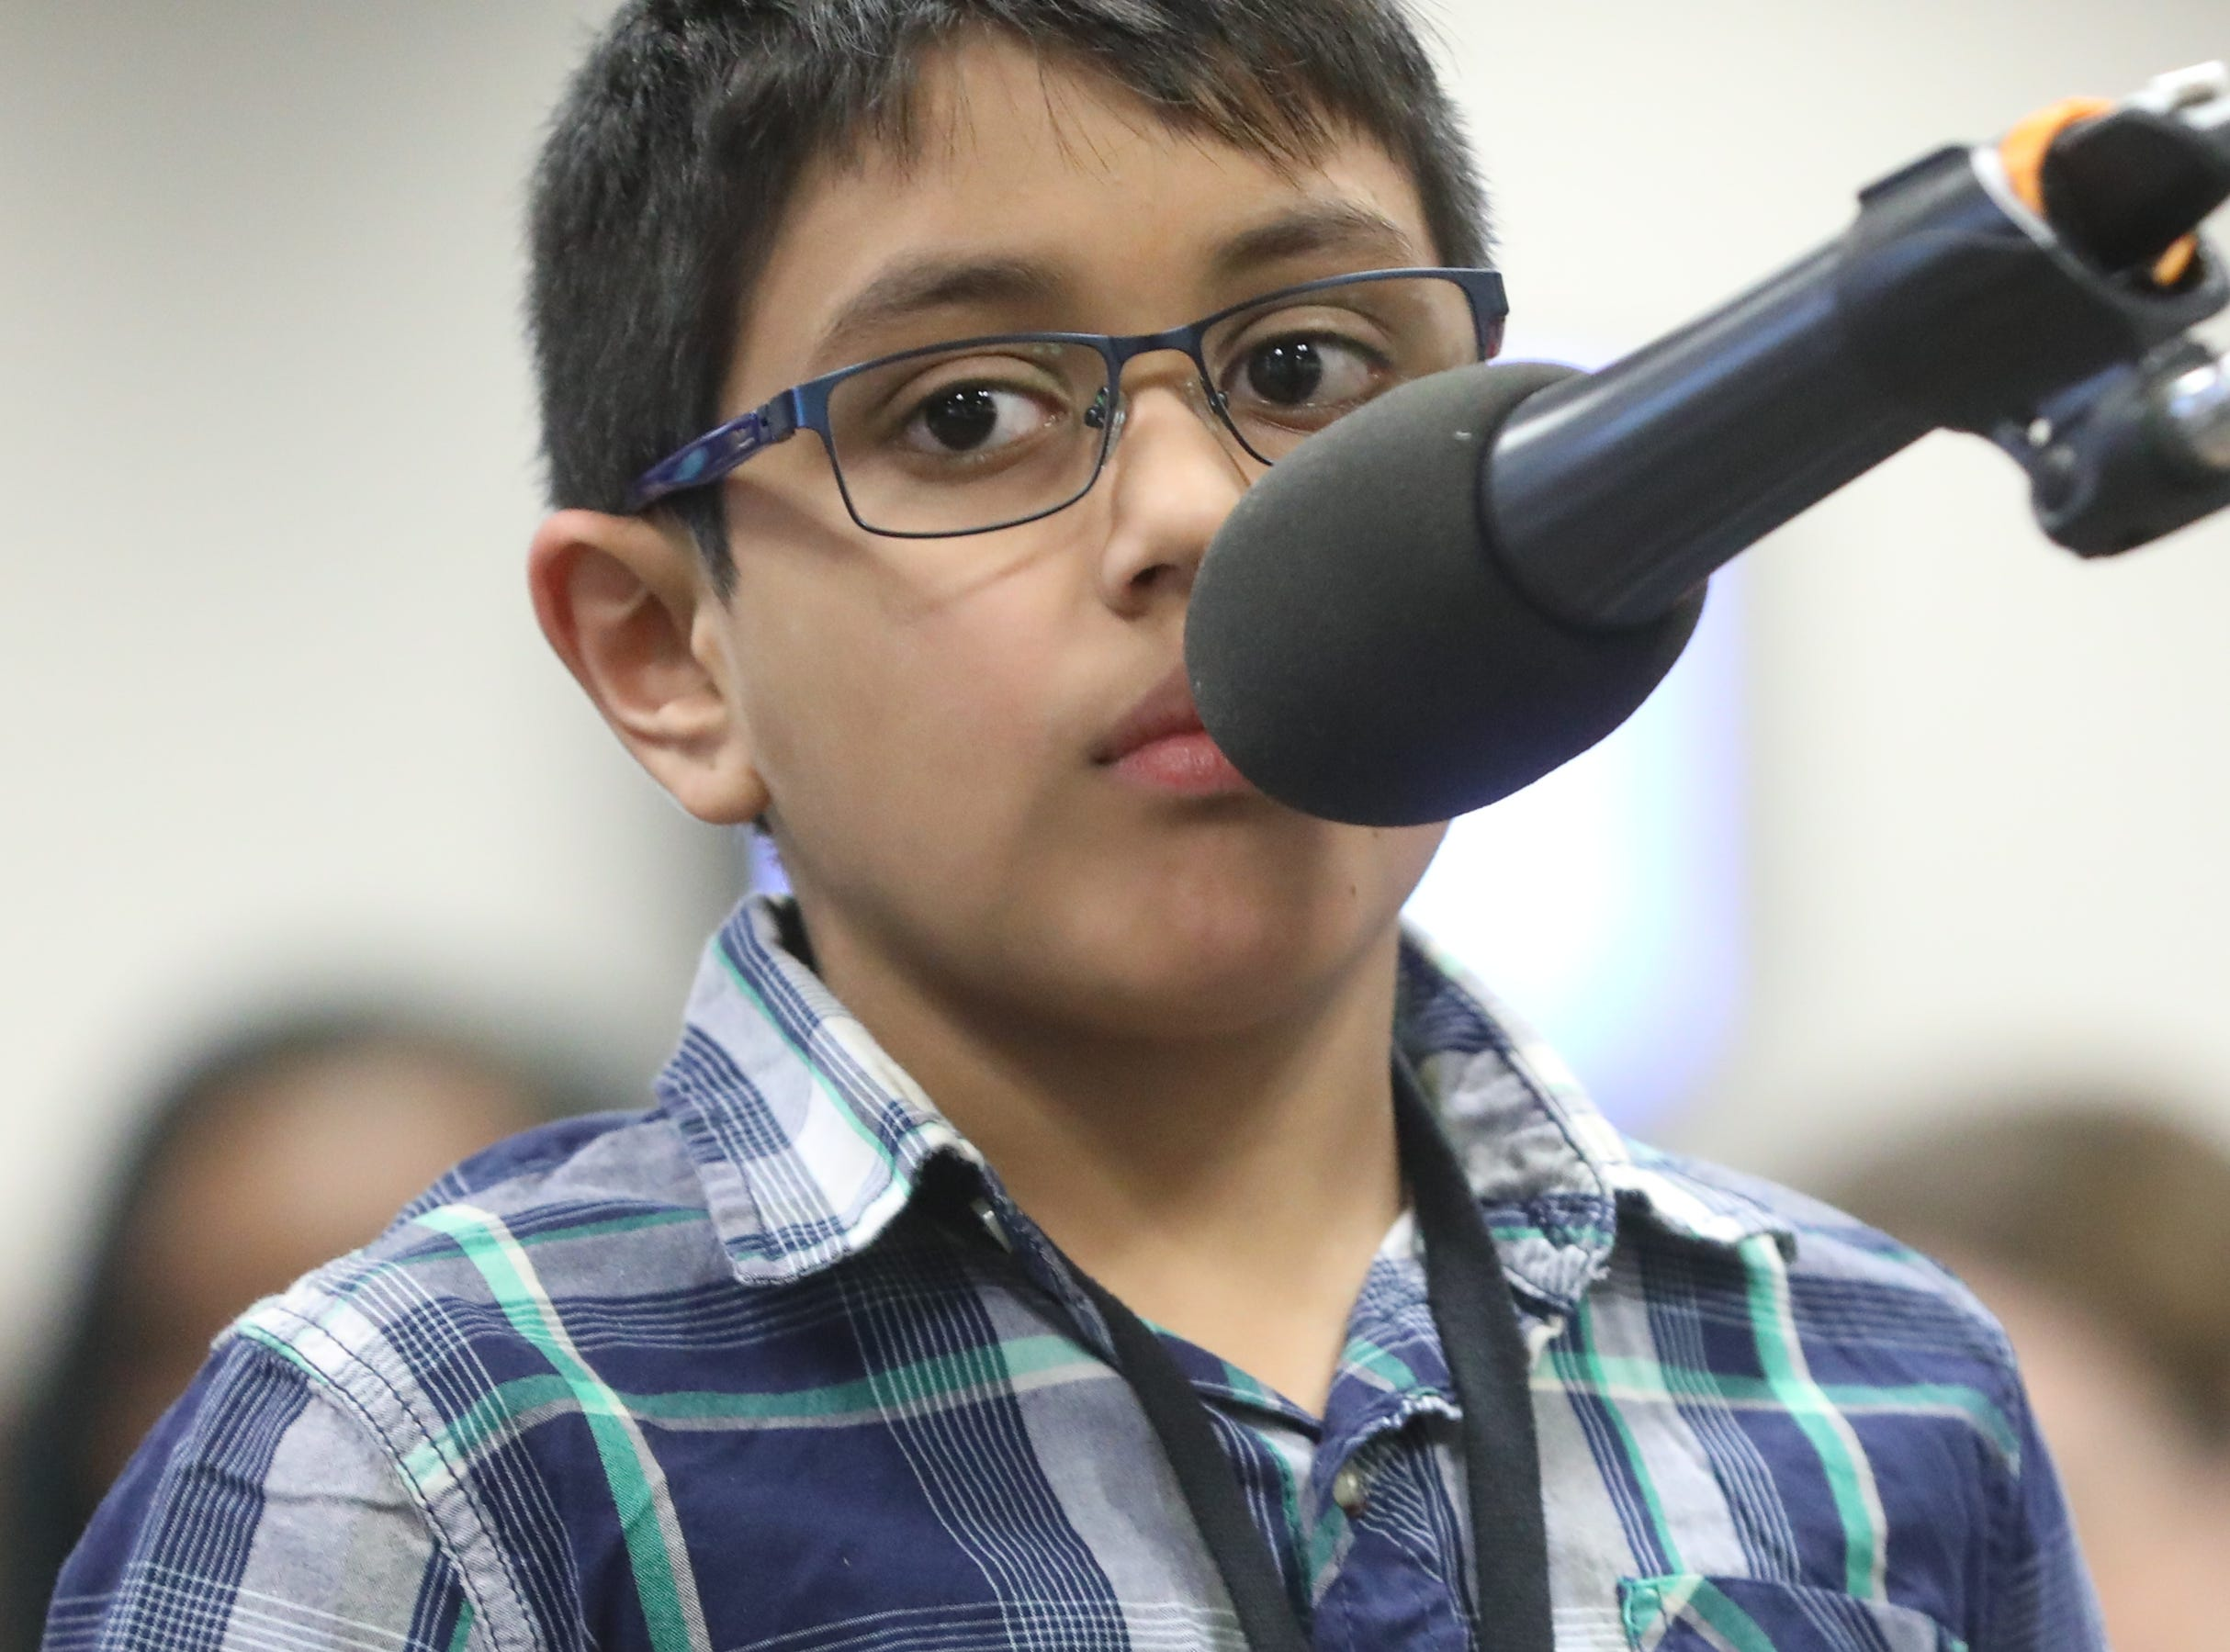 Srivarenya Vempati, of New Milford, competes in the first round of the 2019 North Jersey Spelling Bee, in Paramus. Thursday, March 14, 2019